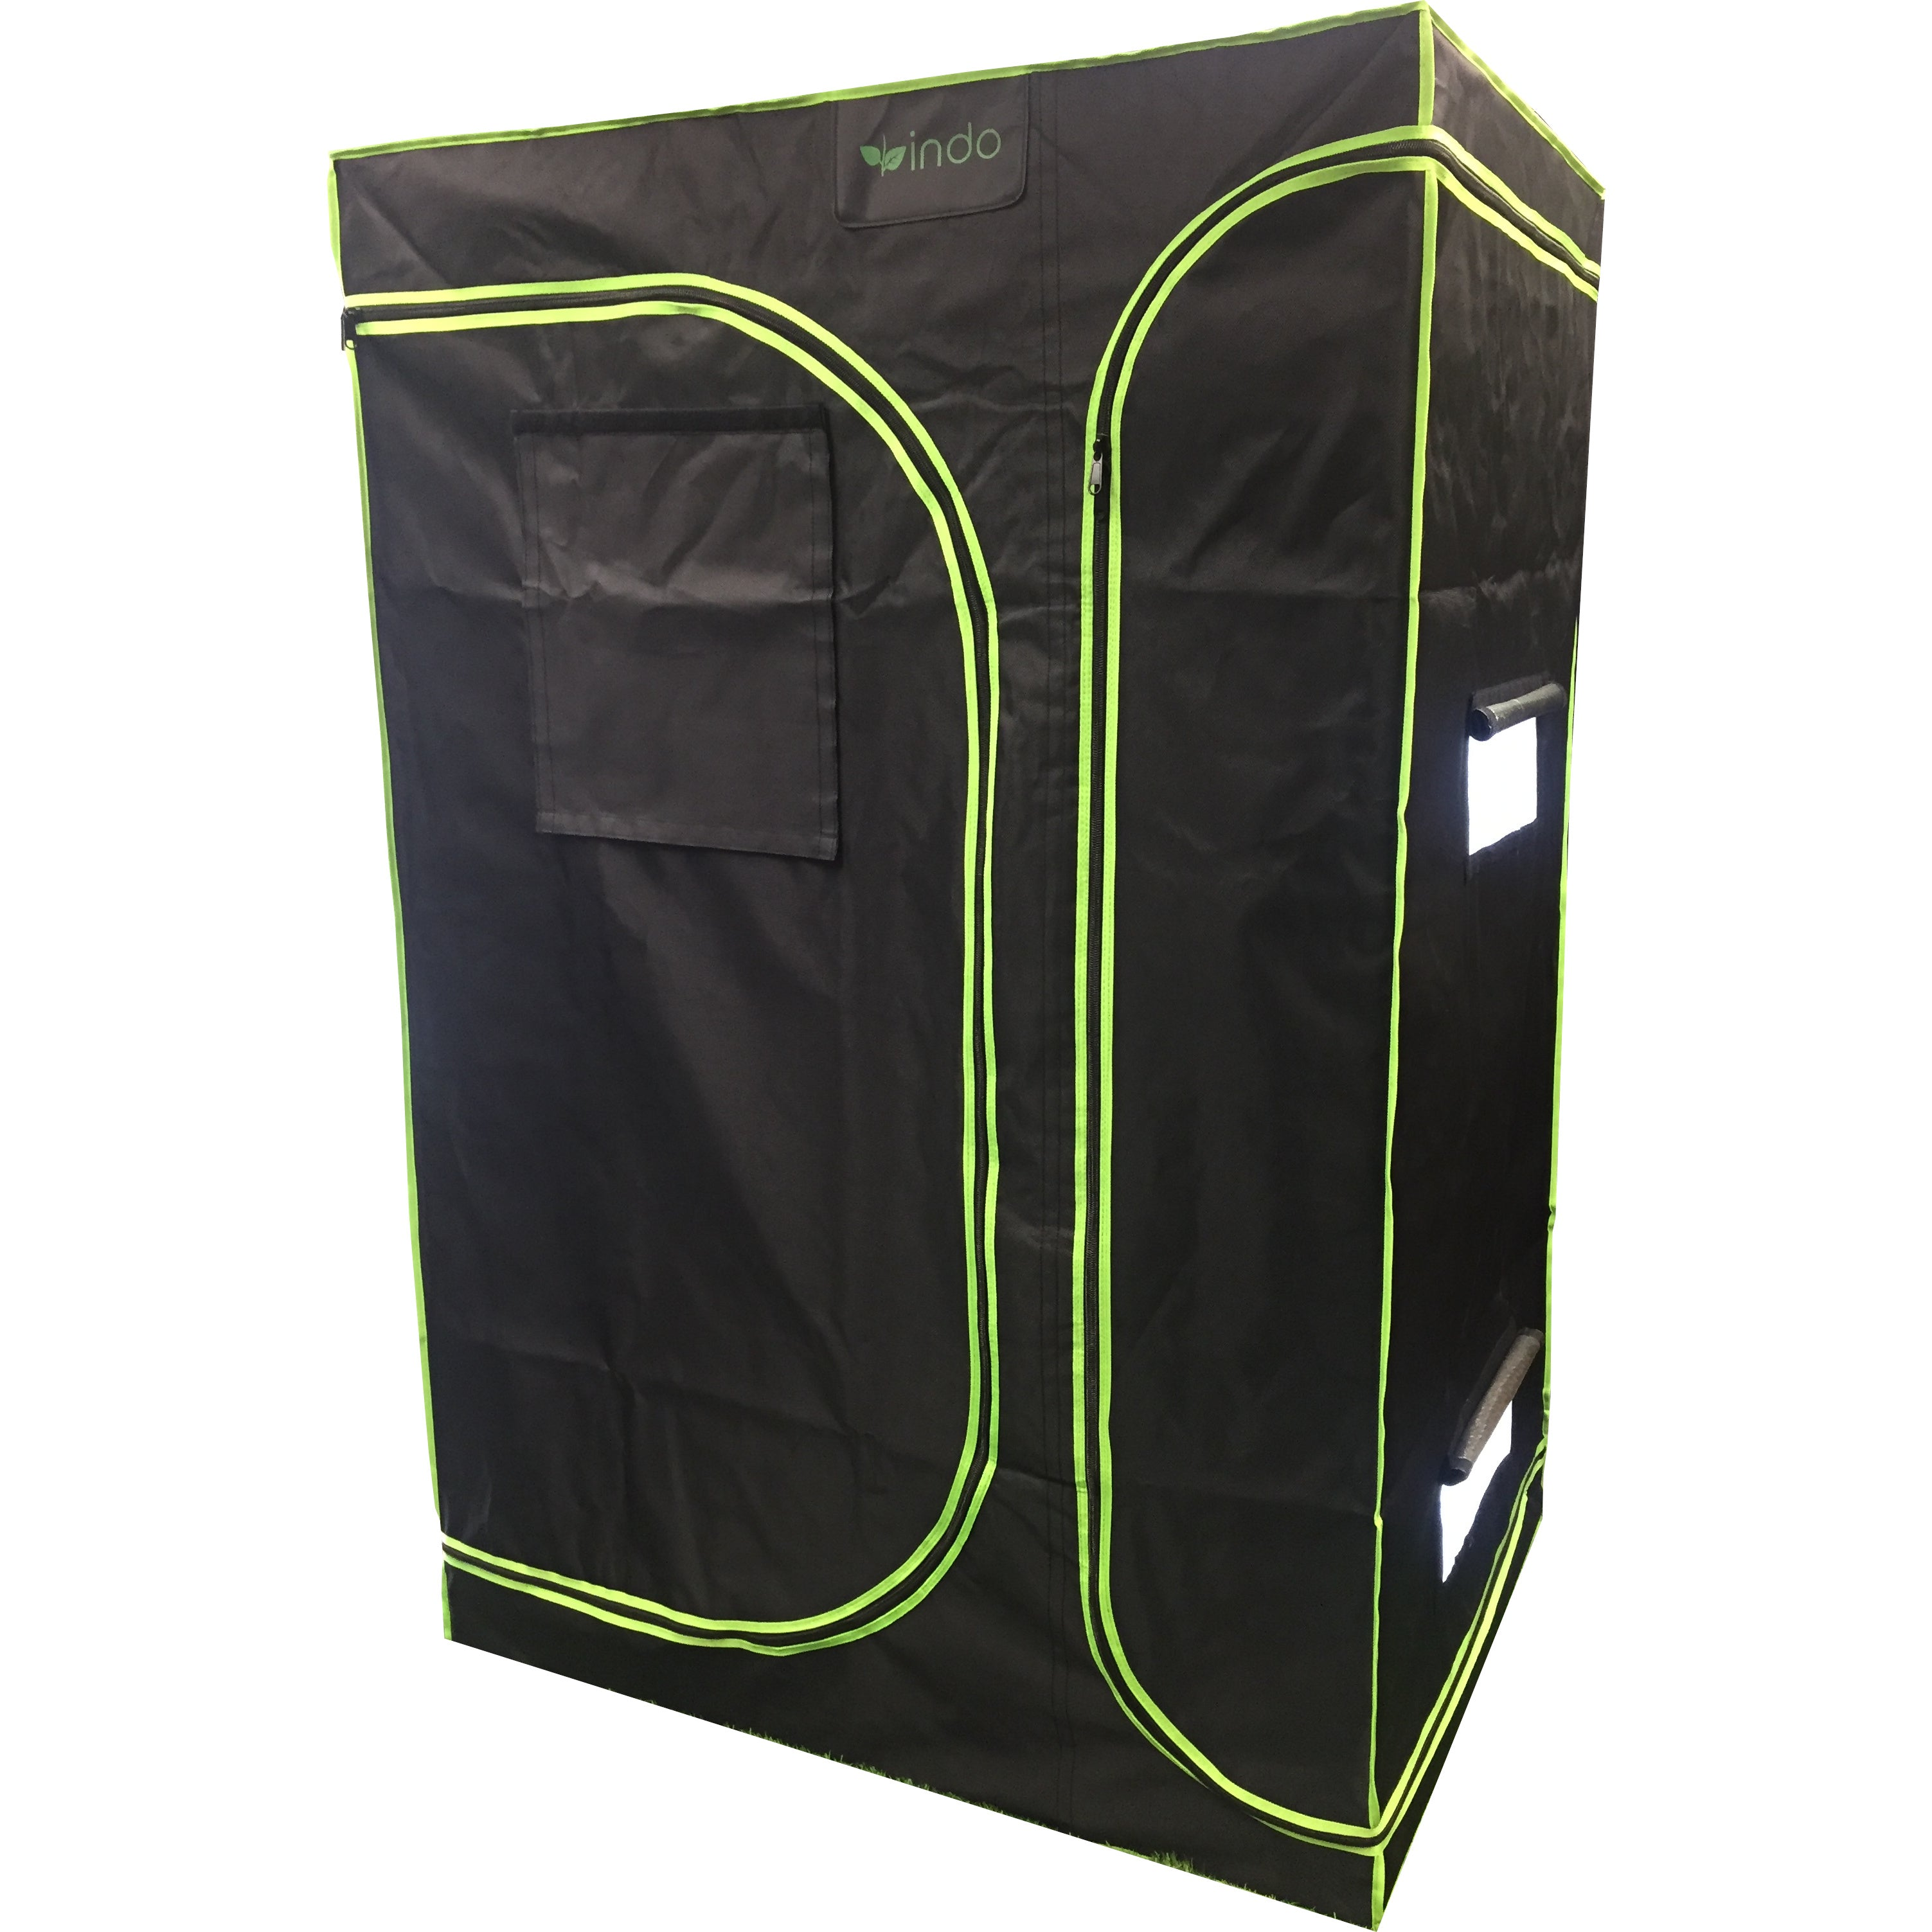 "Grow Tent - 2 in 1 - 48""x36""x72"" - 1680D Oxford Mylar, 19mm Steel poles, Observation Window, HD Zippers, Removeable Trays"